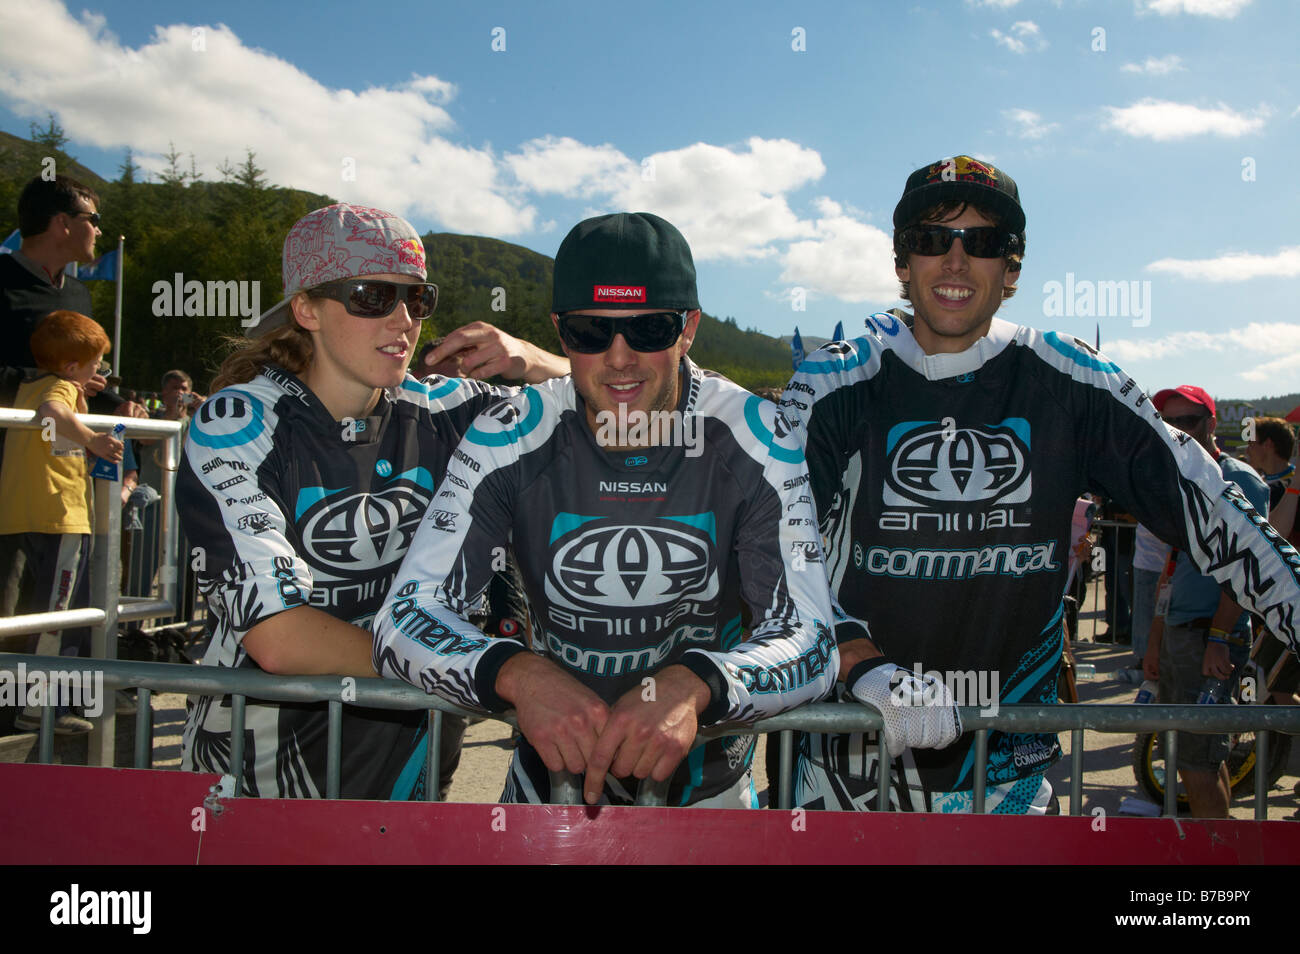 Rachel Dan and Gee Atherton team Animal Commencal downhill mountain bikers at Fort William Scotland World Cup event - Stock Image